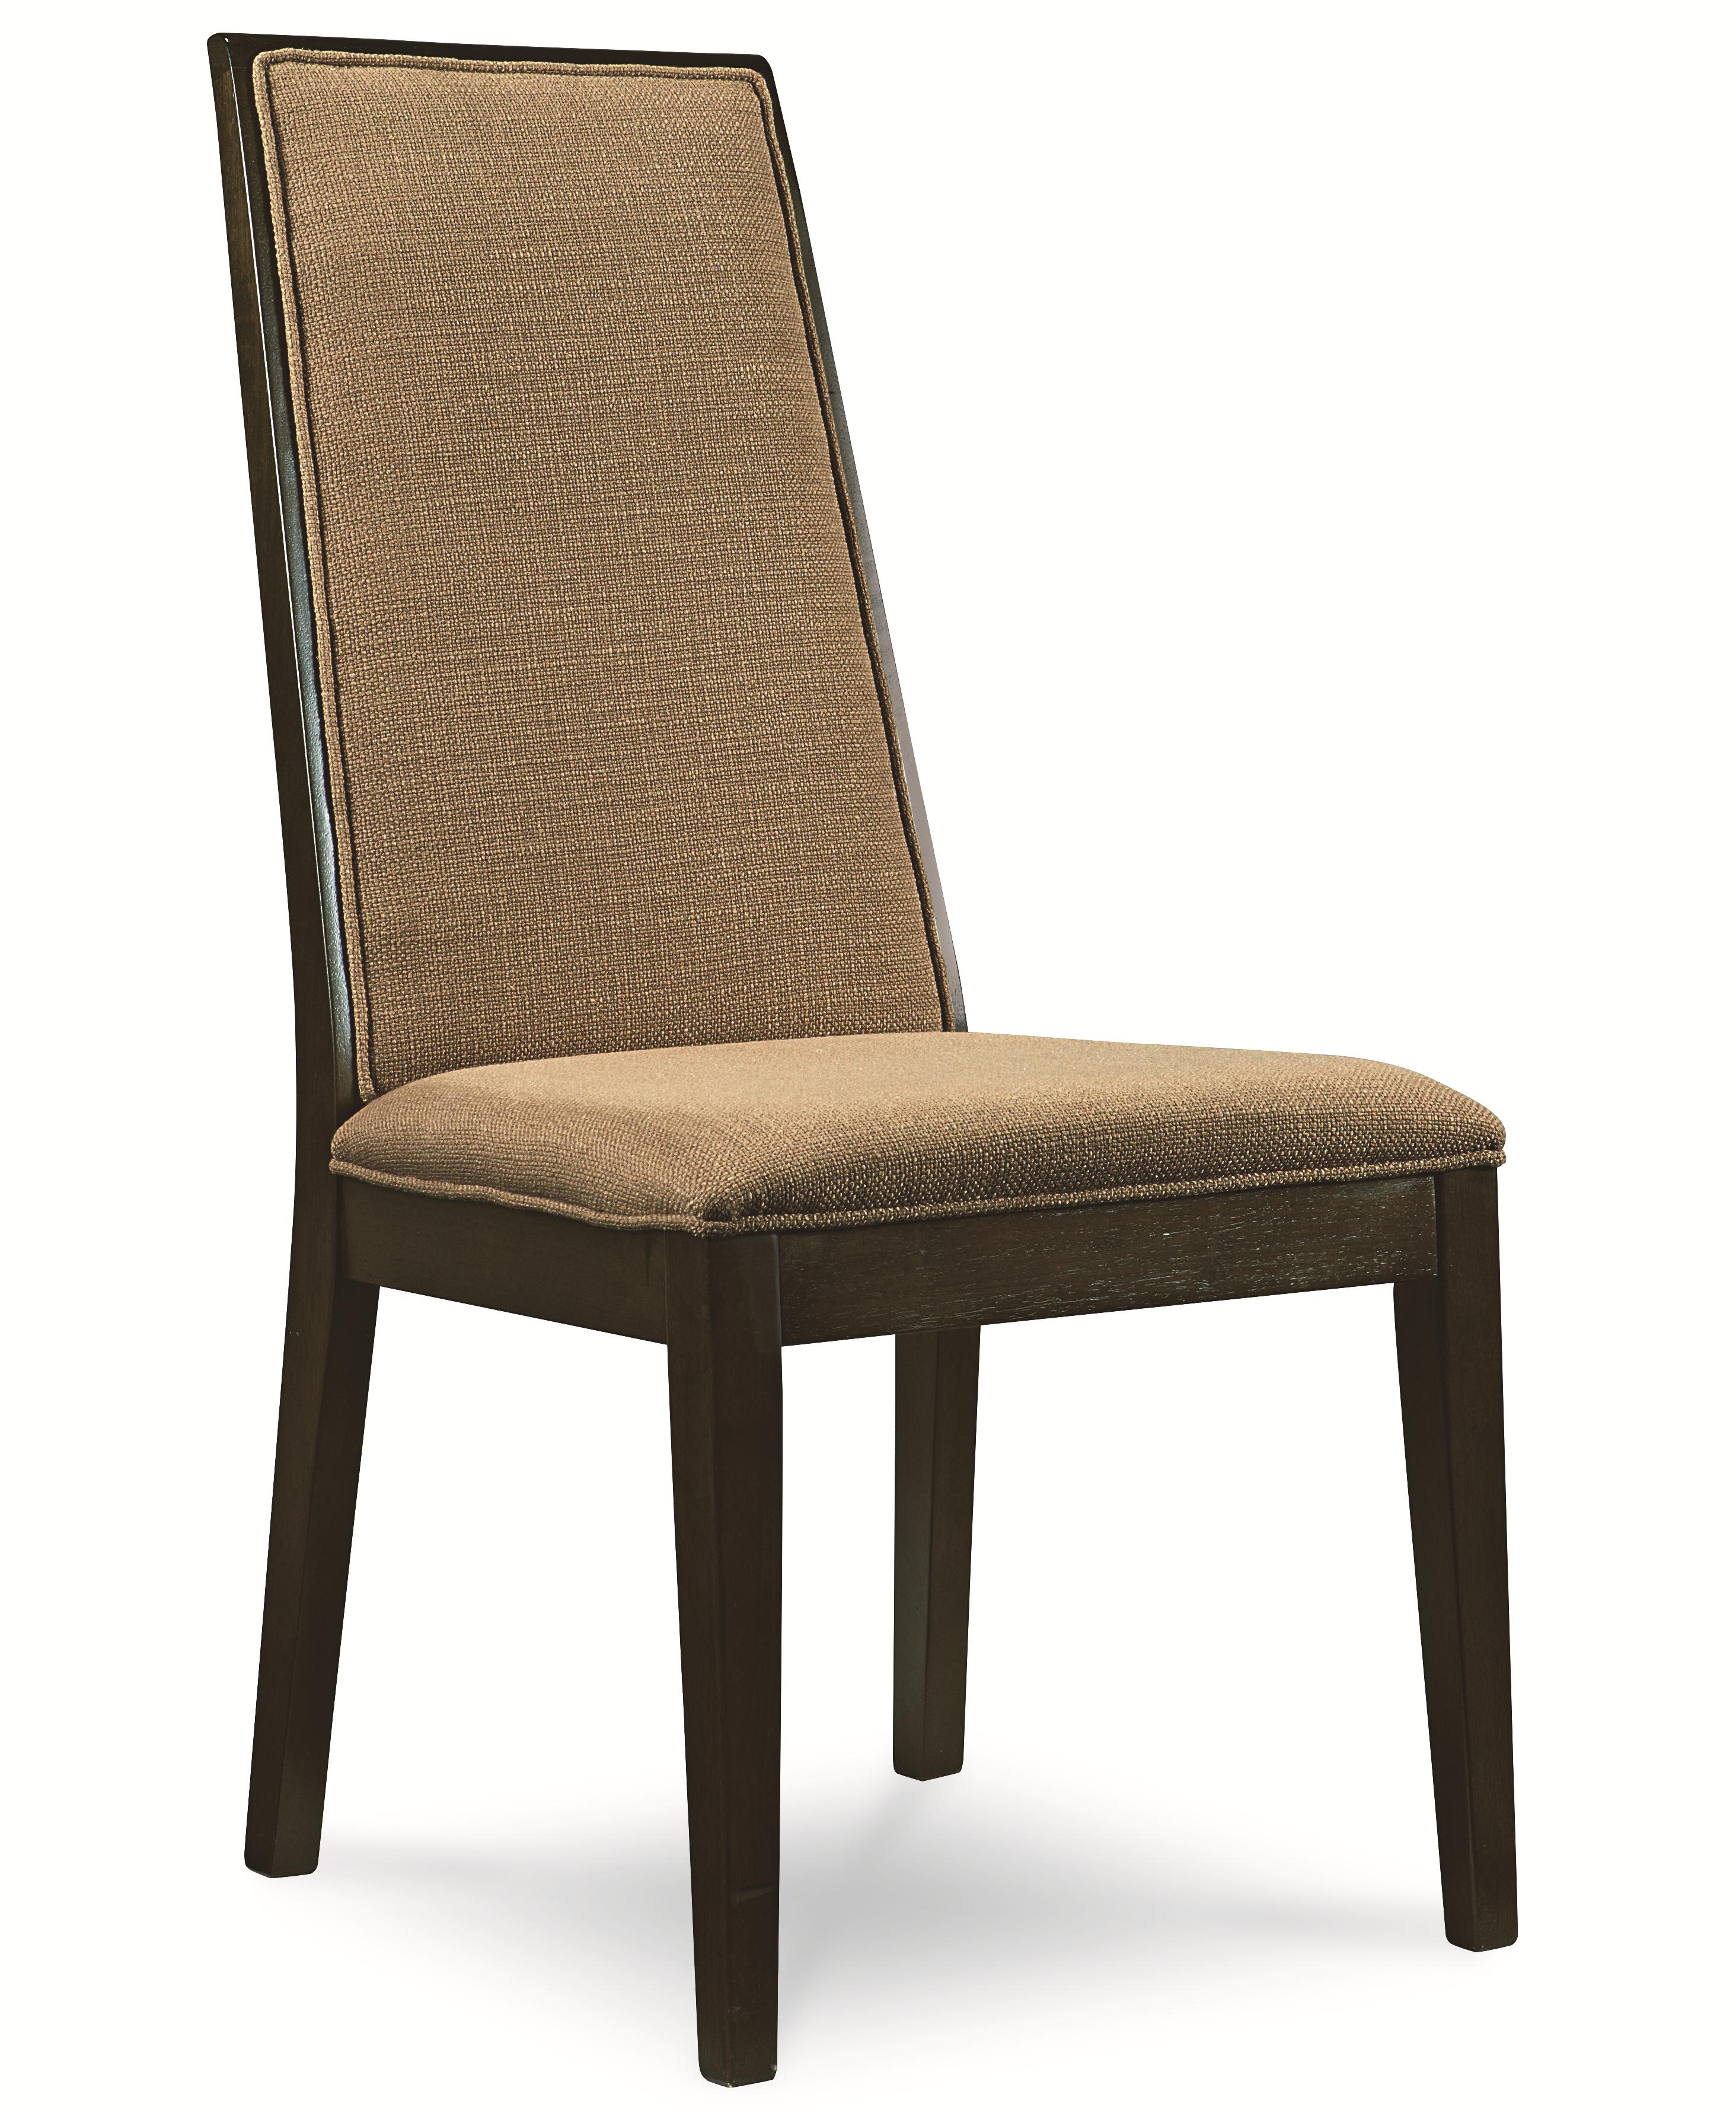 Legacy Classic Kateri Upholstered Side Chair - Item Number: 3600-340 KD